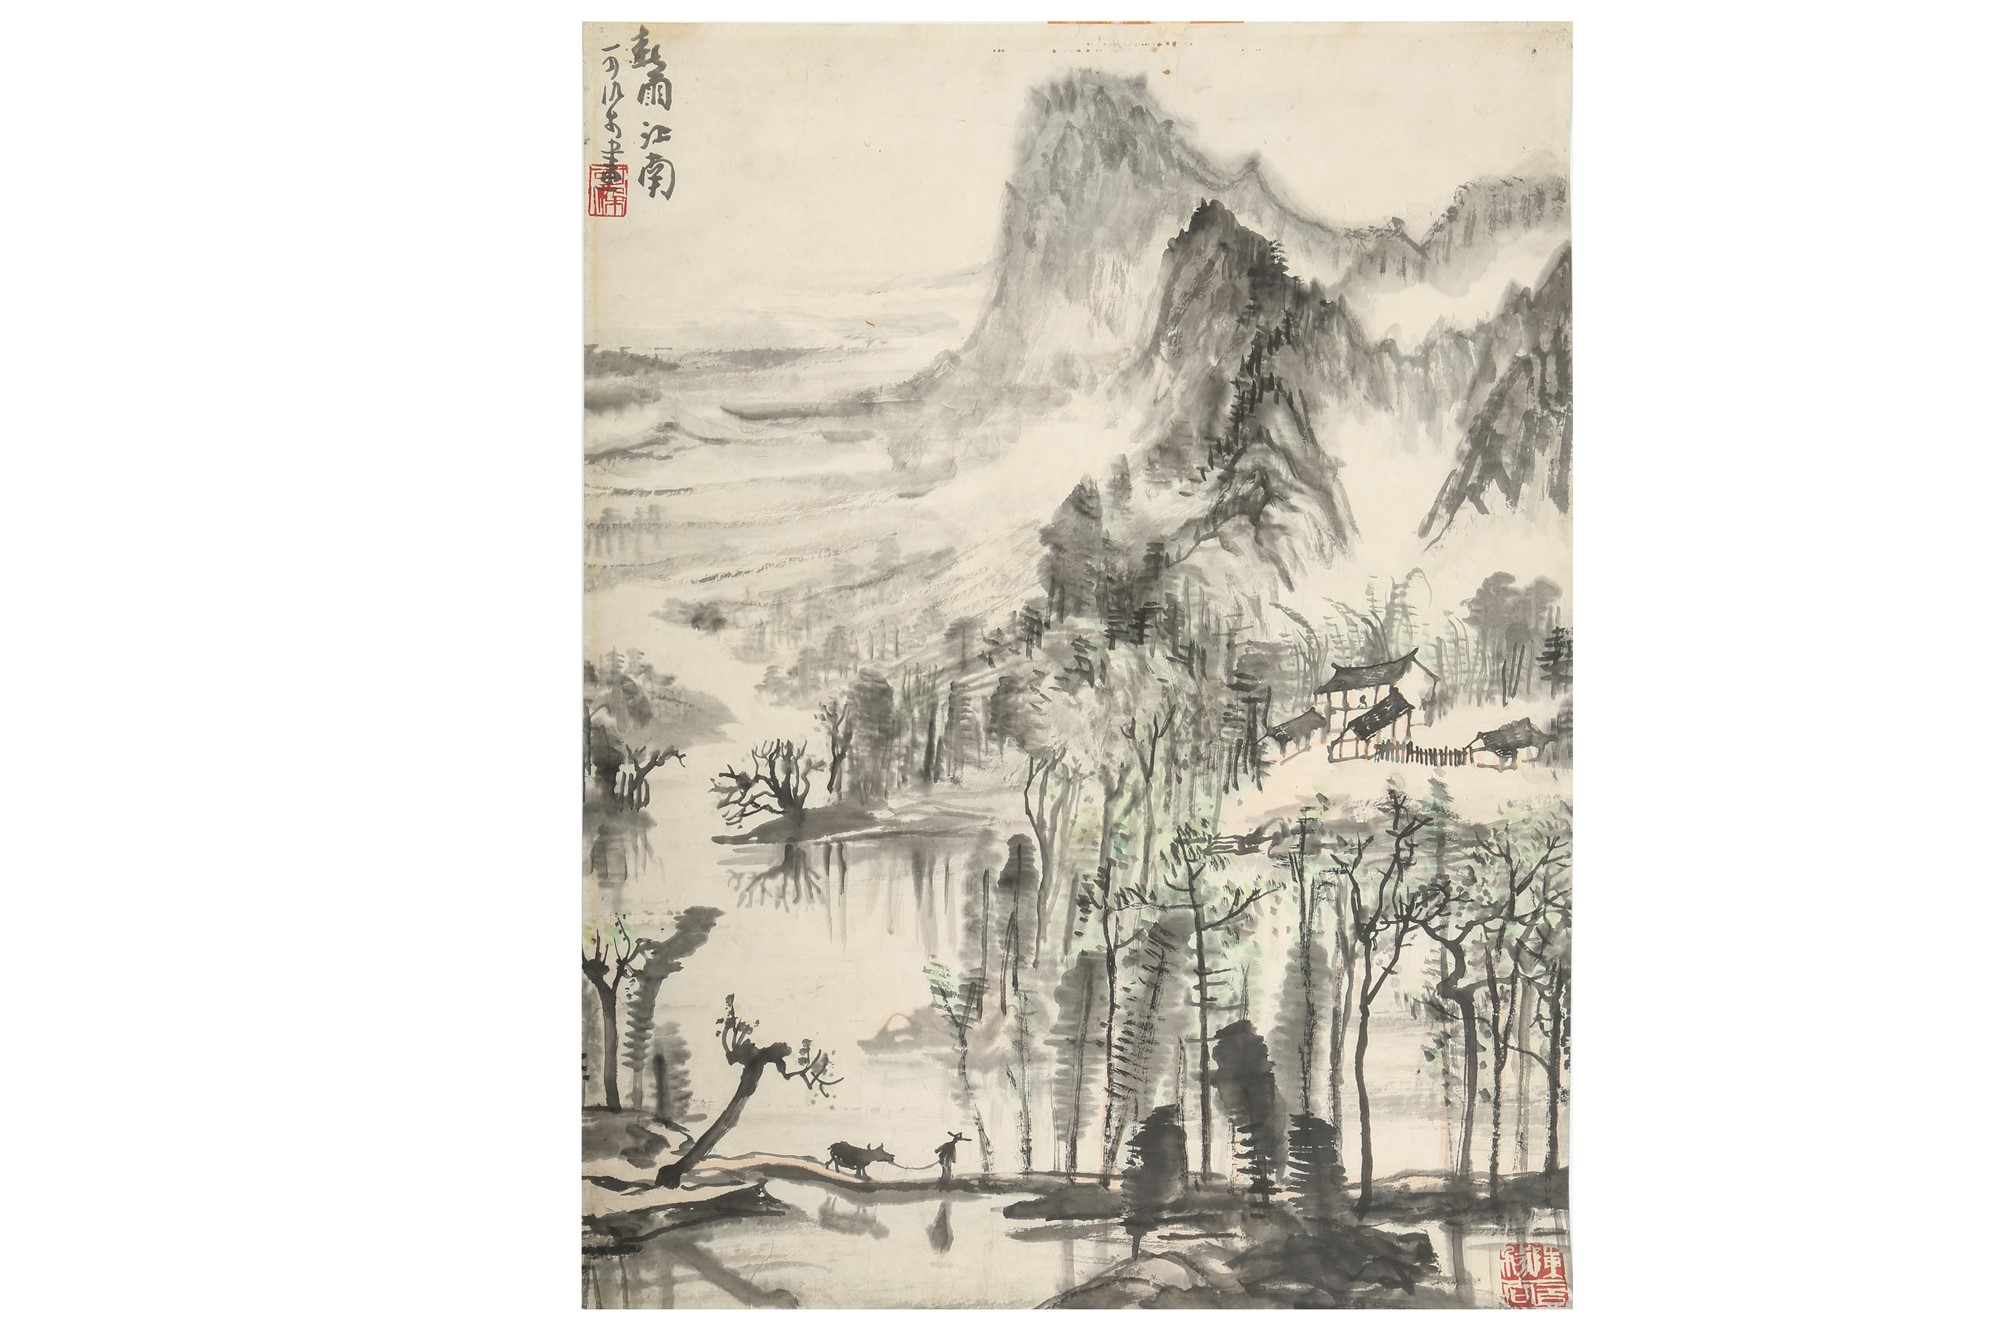 Li Keran (1907 – 1989). Landscape, ink on paper, unmounted Chinese painting.